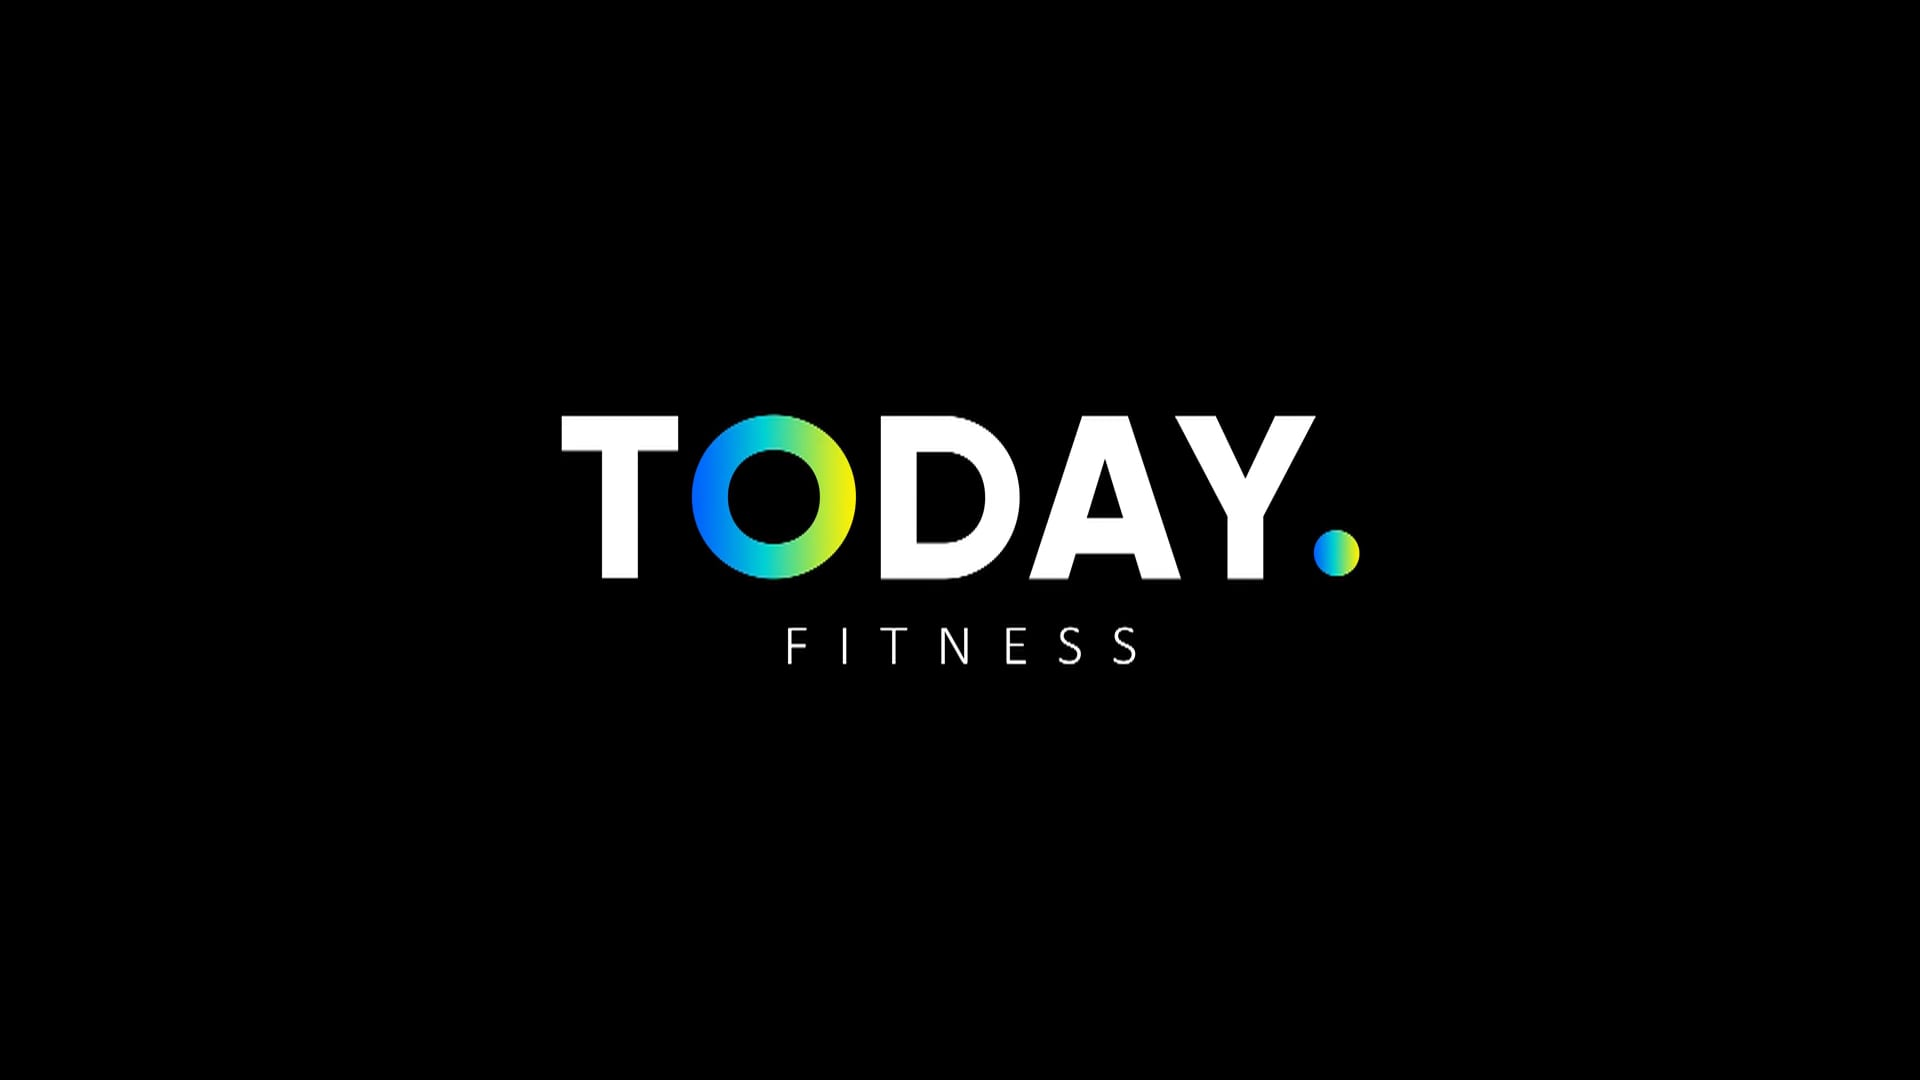 Today Fitness - Concept Art